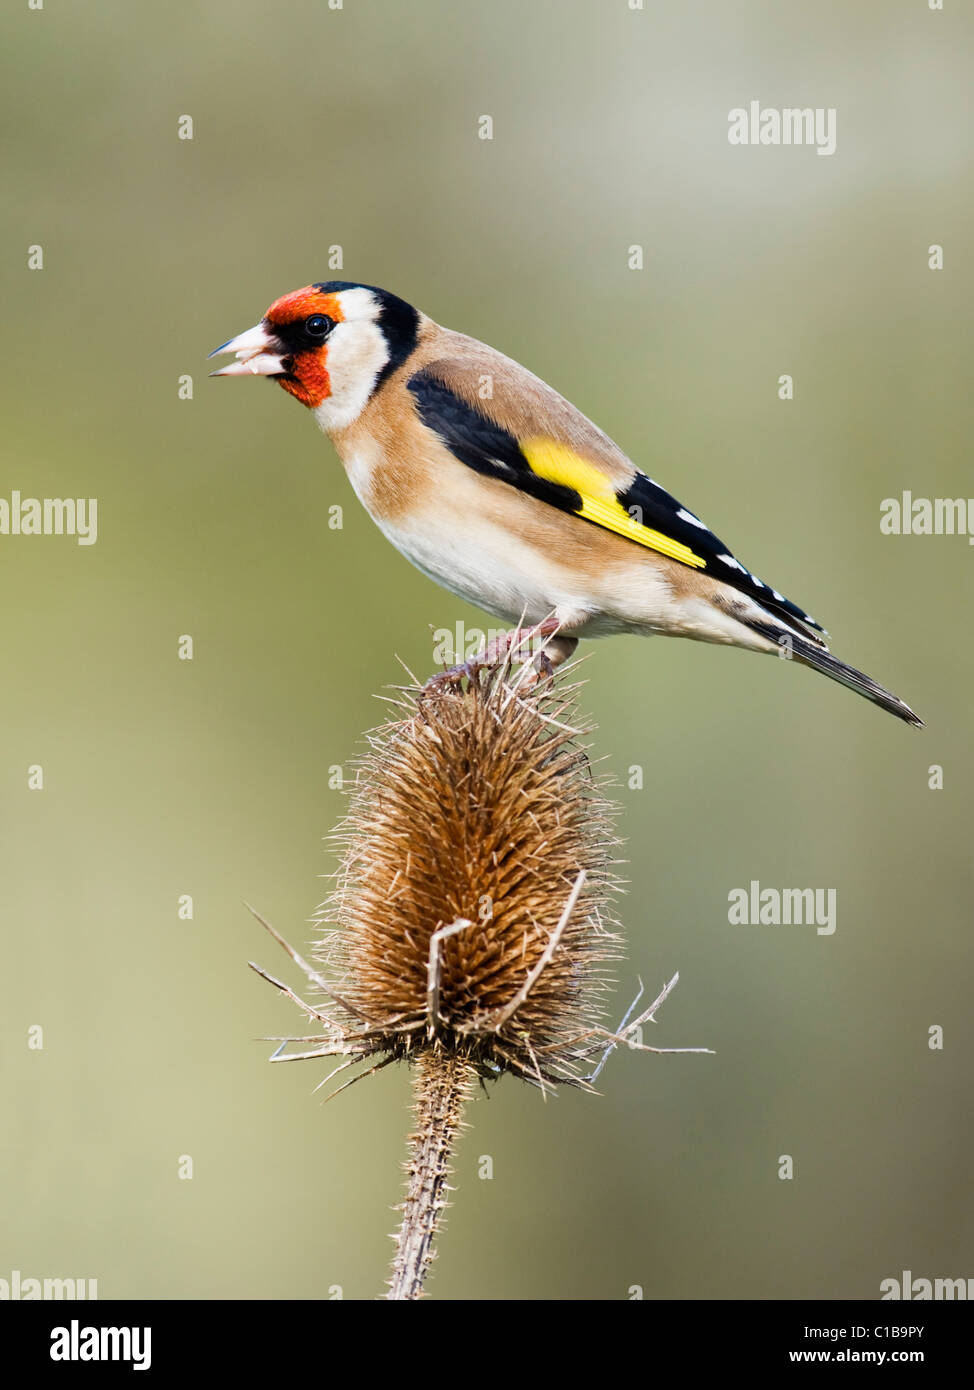 Goldfinch perched on dried Teasel - Stock Image